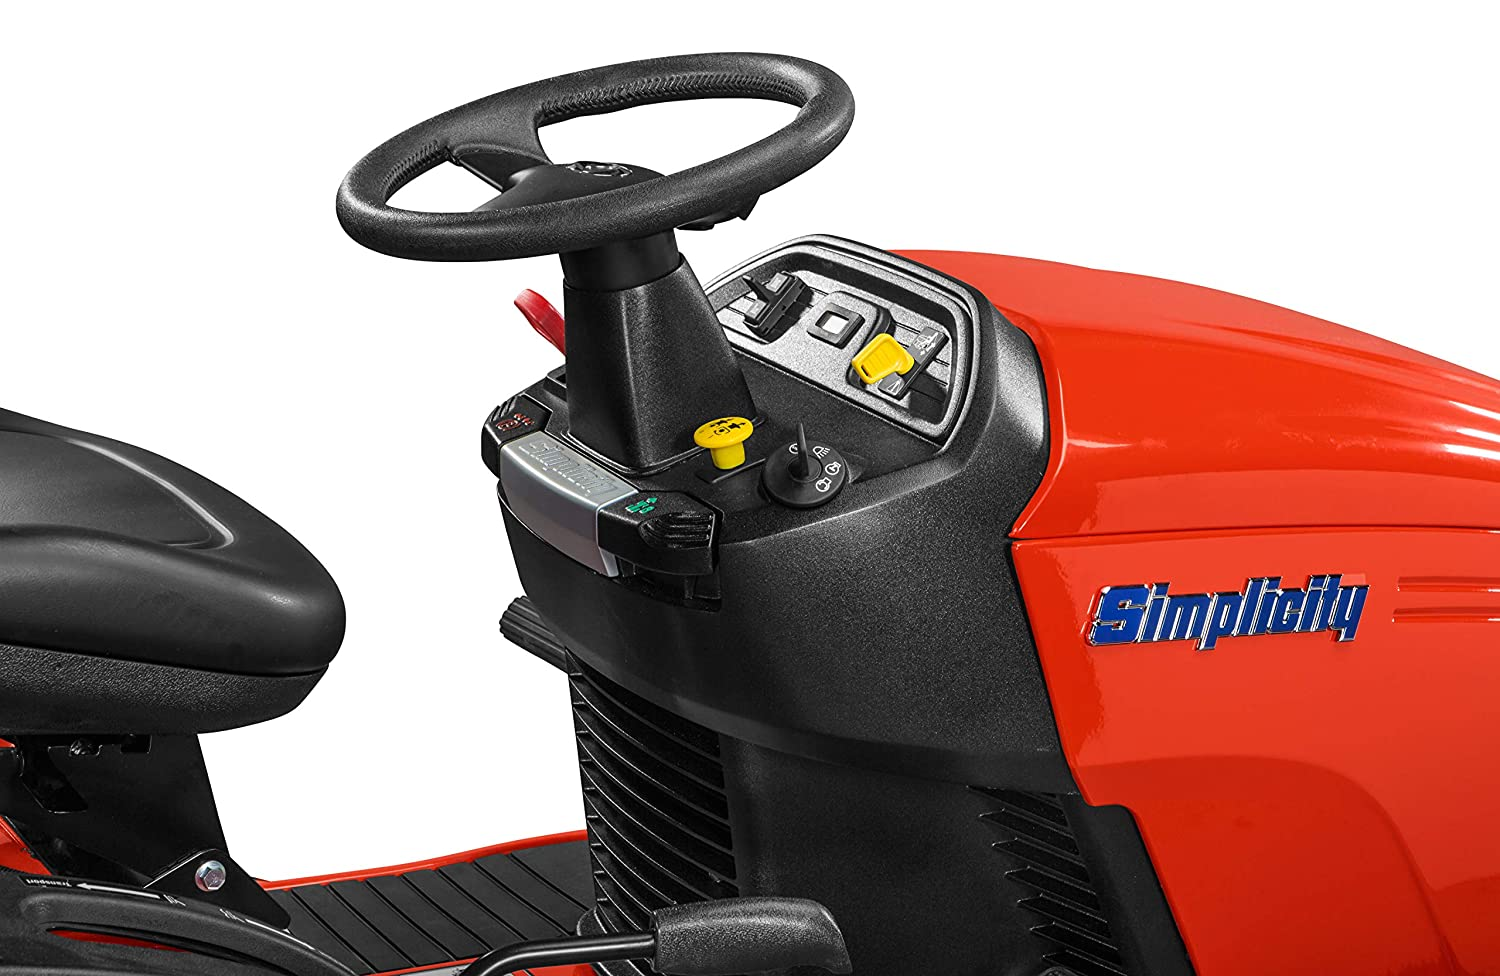 Simplicity Lawn Tractor Reviews 2019 (read this before you